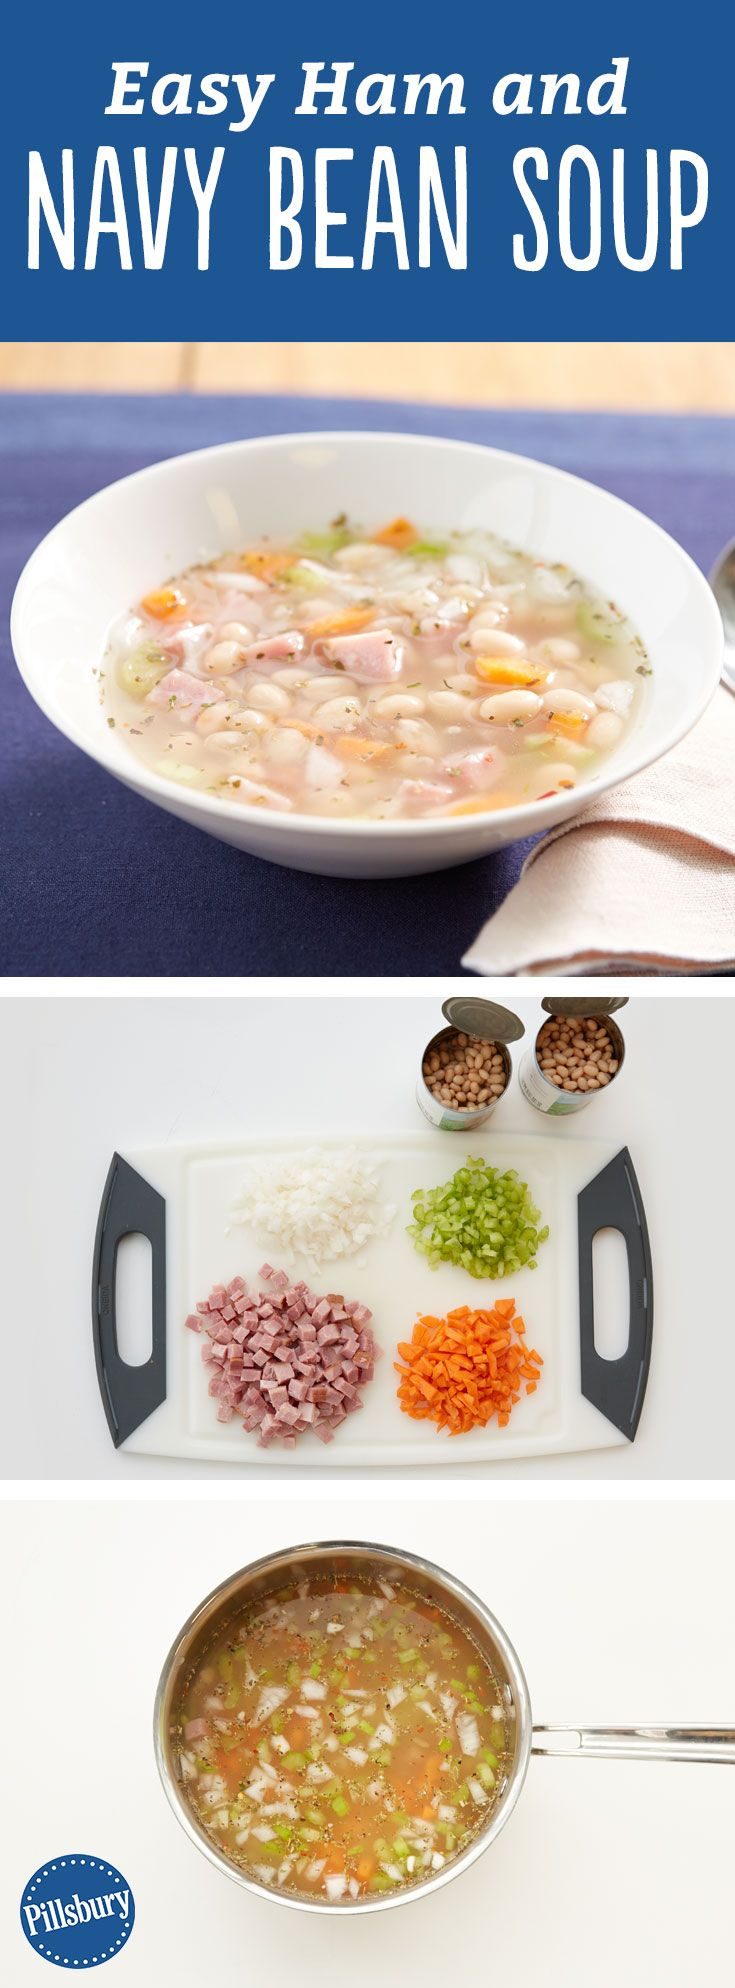 This easy + hearty soup tastes like something your grandma would make, in the very best possible way. Packed with ham, navy beans and veggies, it's ready to go in about half an hour. Mashing some of the beans before adding to the soup is the secret to the deliciously creamy texture. Tips: Try using chopped cooked chicken in place of the ham. One teaspoon Italian seasoning can be substituted for the Tuscan seasoning.